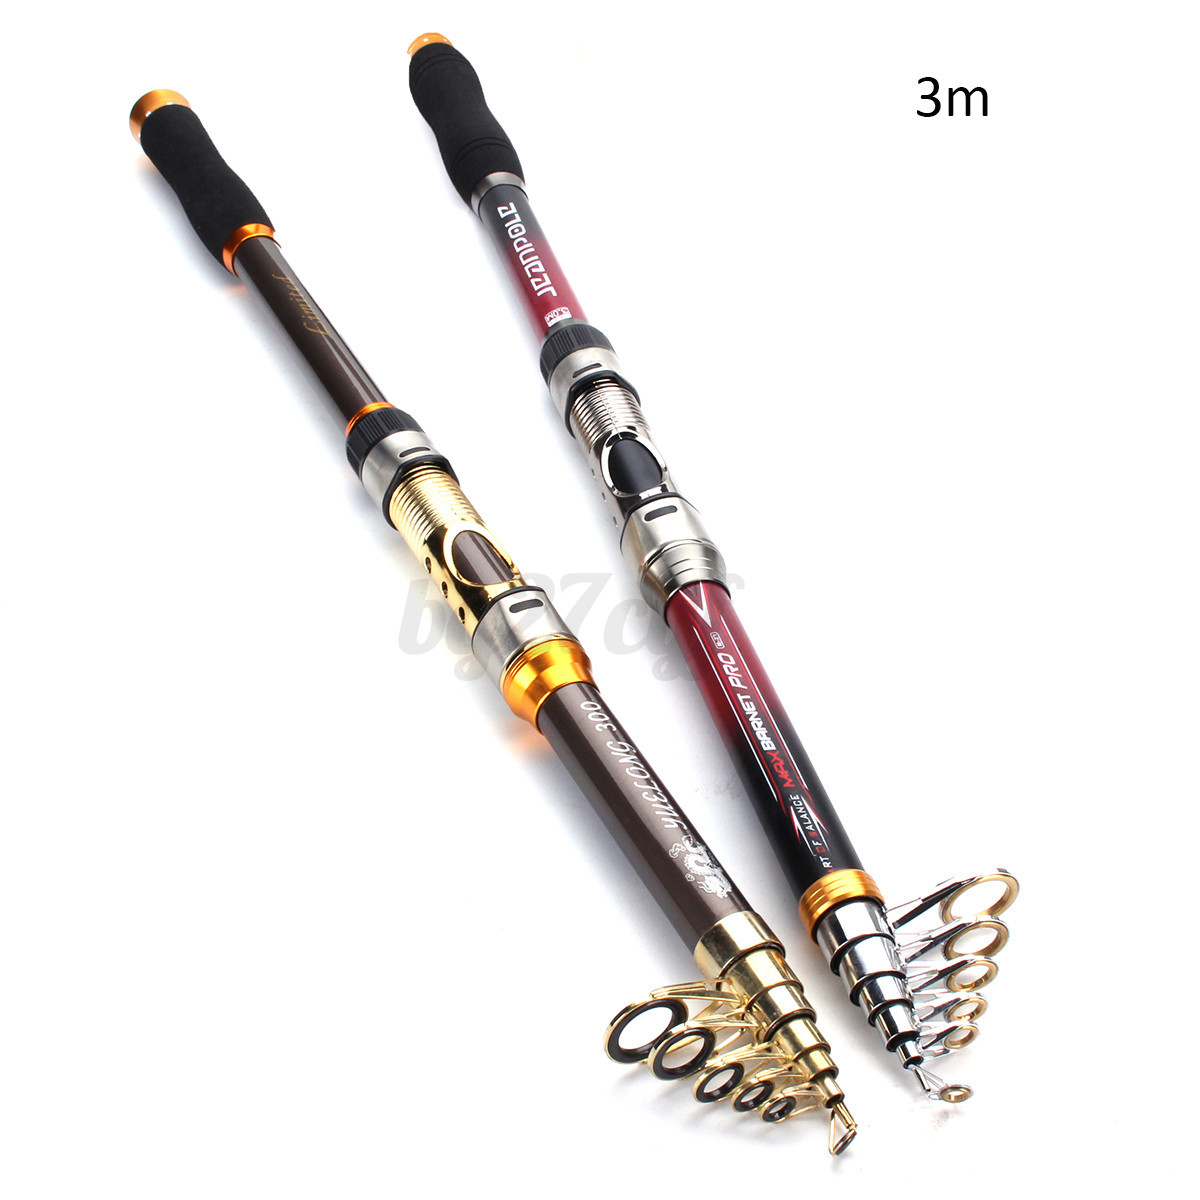 1 6 super strong carbon telescopic spinning pole for Strongest fishing rod